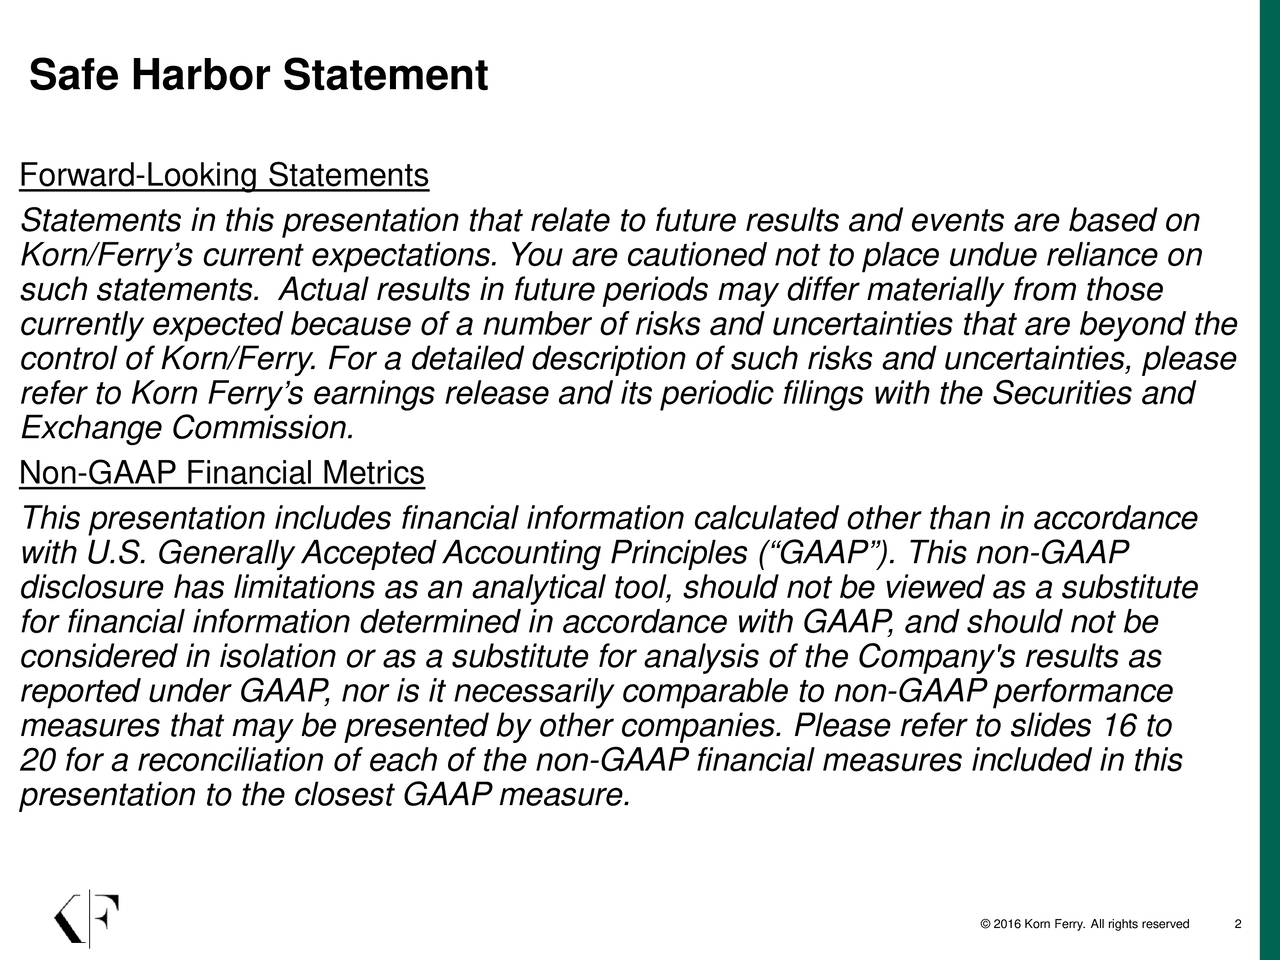 Forward-Looking Statements Statements in this presentation that relate to future results and events are based on Korn/Ferrys current expectations. You are cautioned not to place undue reliance on such statements. Actual results in future periods may differ materially from those currently expected because of a number of risks and uncertainties that are beyond the control of Korn/Ferry. For a detailed description of such risks and uncertainties, please refer to Korn Ferrys earnings release and its periodic filings with the Securities and Exchange Commission. Non-GAAP Financial Metrics This presentation includes financial information calculated other than in accordance with U.S. Generally Accepted Accounting Principles (GAAP). This non-GAAP disclosure has limitations as an analytical tool, should not be viewed as a substitute for financial information determined in accordance with GAAP, and should not be considered in isolation or as a substitute for analysis of the Company's results as reported under GAAP, nor is it necessarily comparable to non-GAAP performance measures that may be presented by other companies. Please refer to slides16 to 20 for a reconciliation of each of the non-GAAP financial measures included in this presentation to the closest GAAP measure. 2016 Korn Ferry. 2ll rights reserved